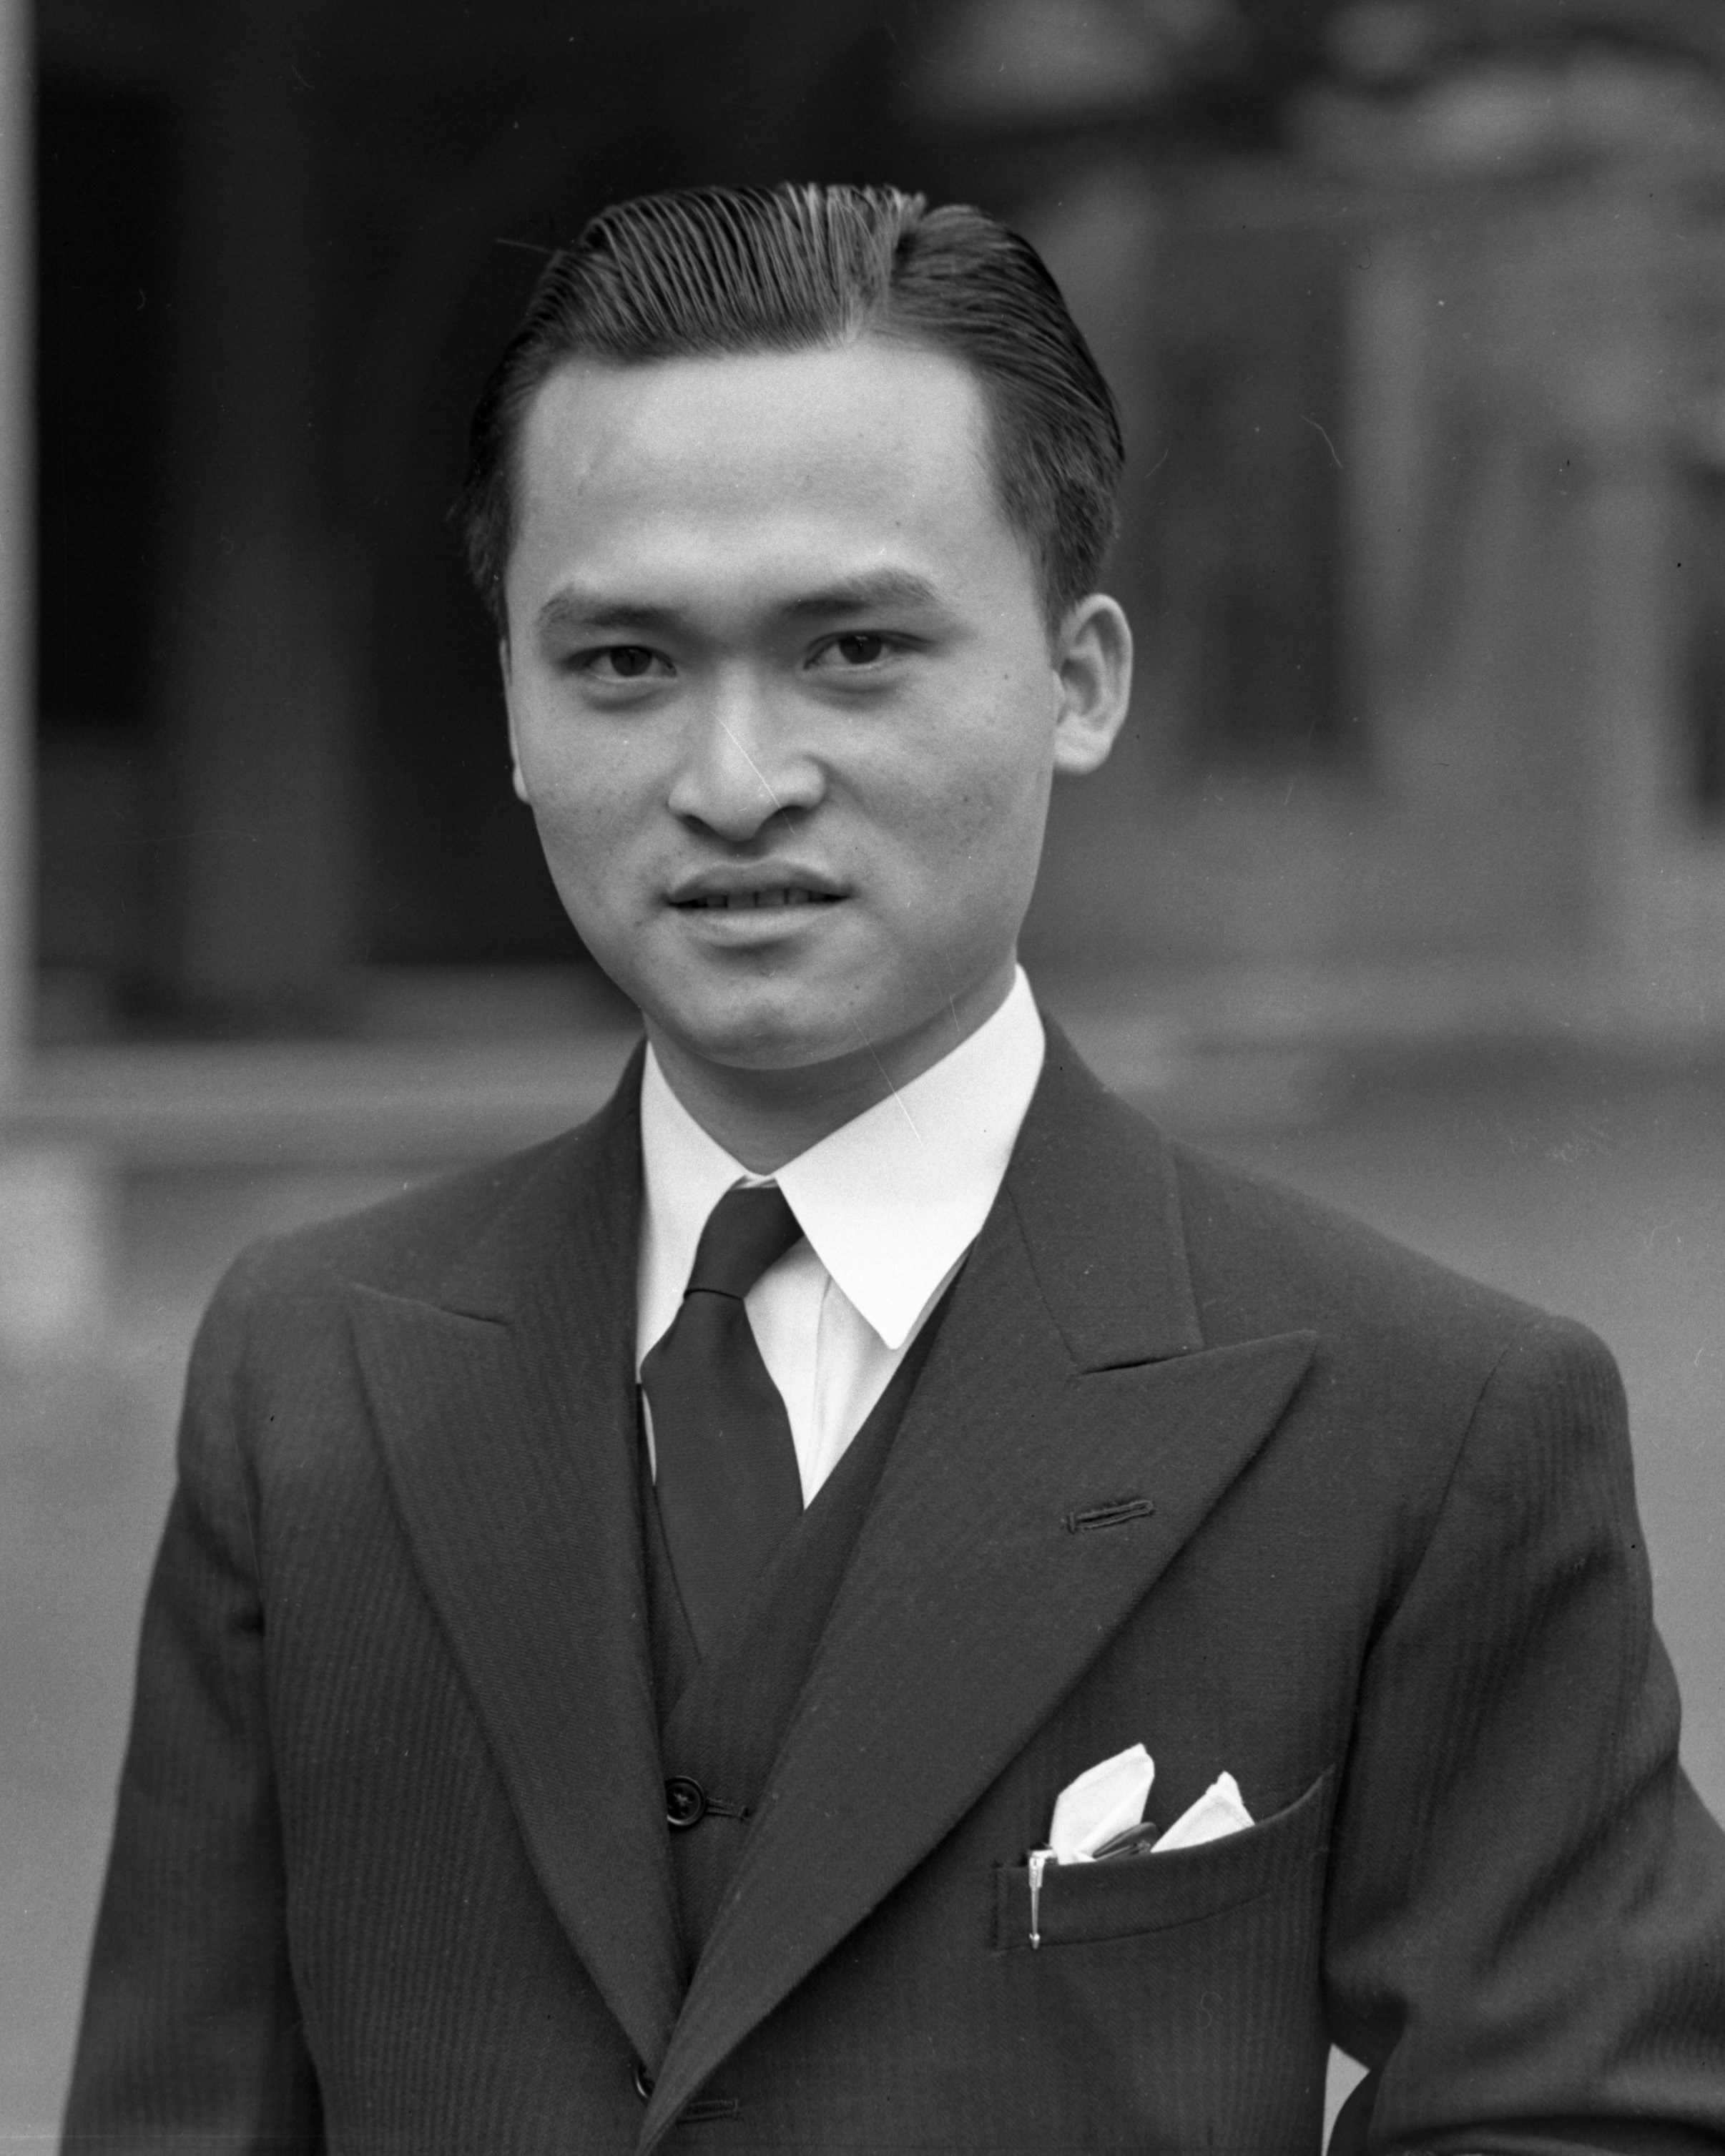 Poon Lim posing for a photo on his trip to London